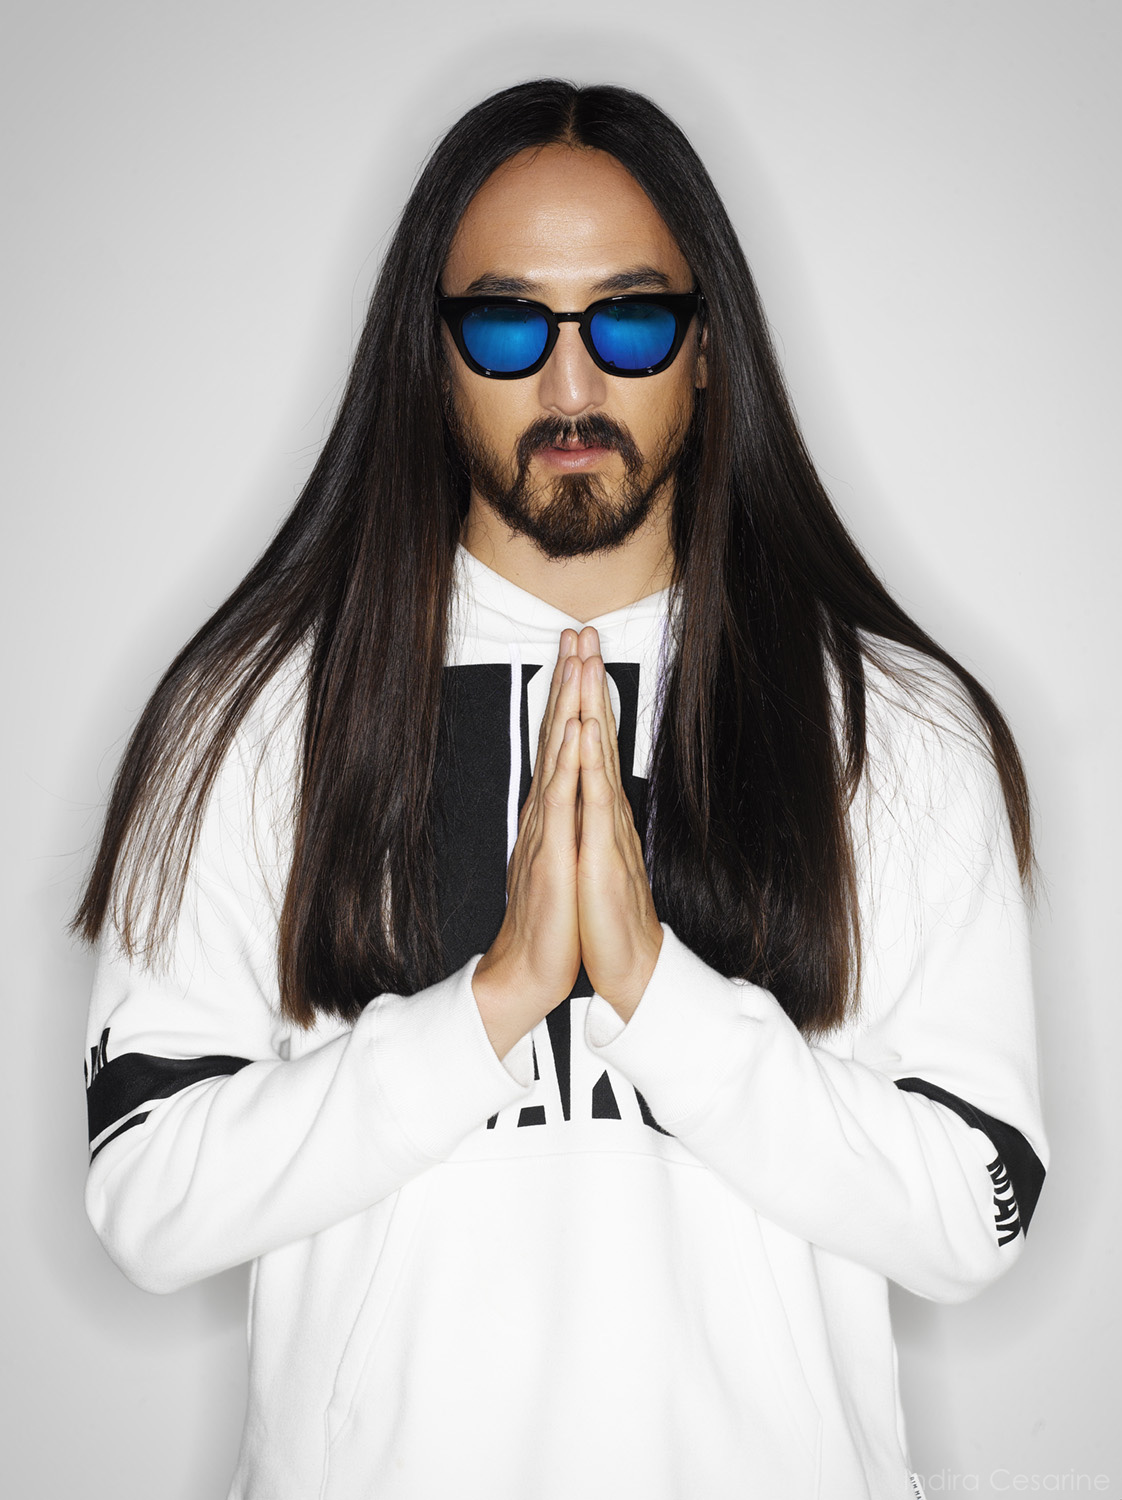 Steve-Aoki-The-Untitled-Magazine-Photography-by-Indira-Cesarine-001.jpg